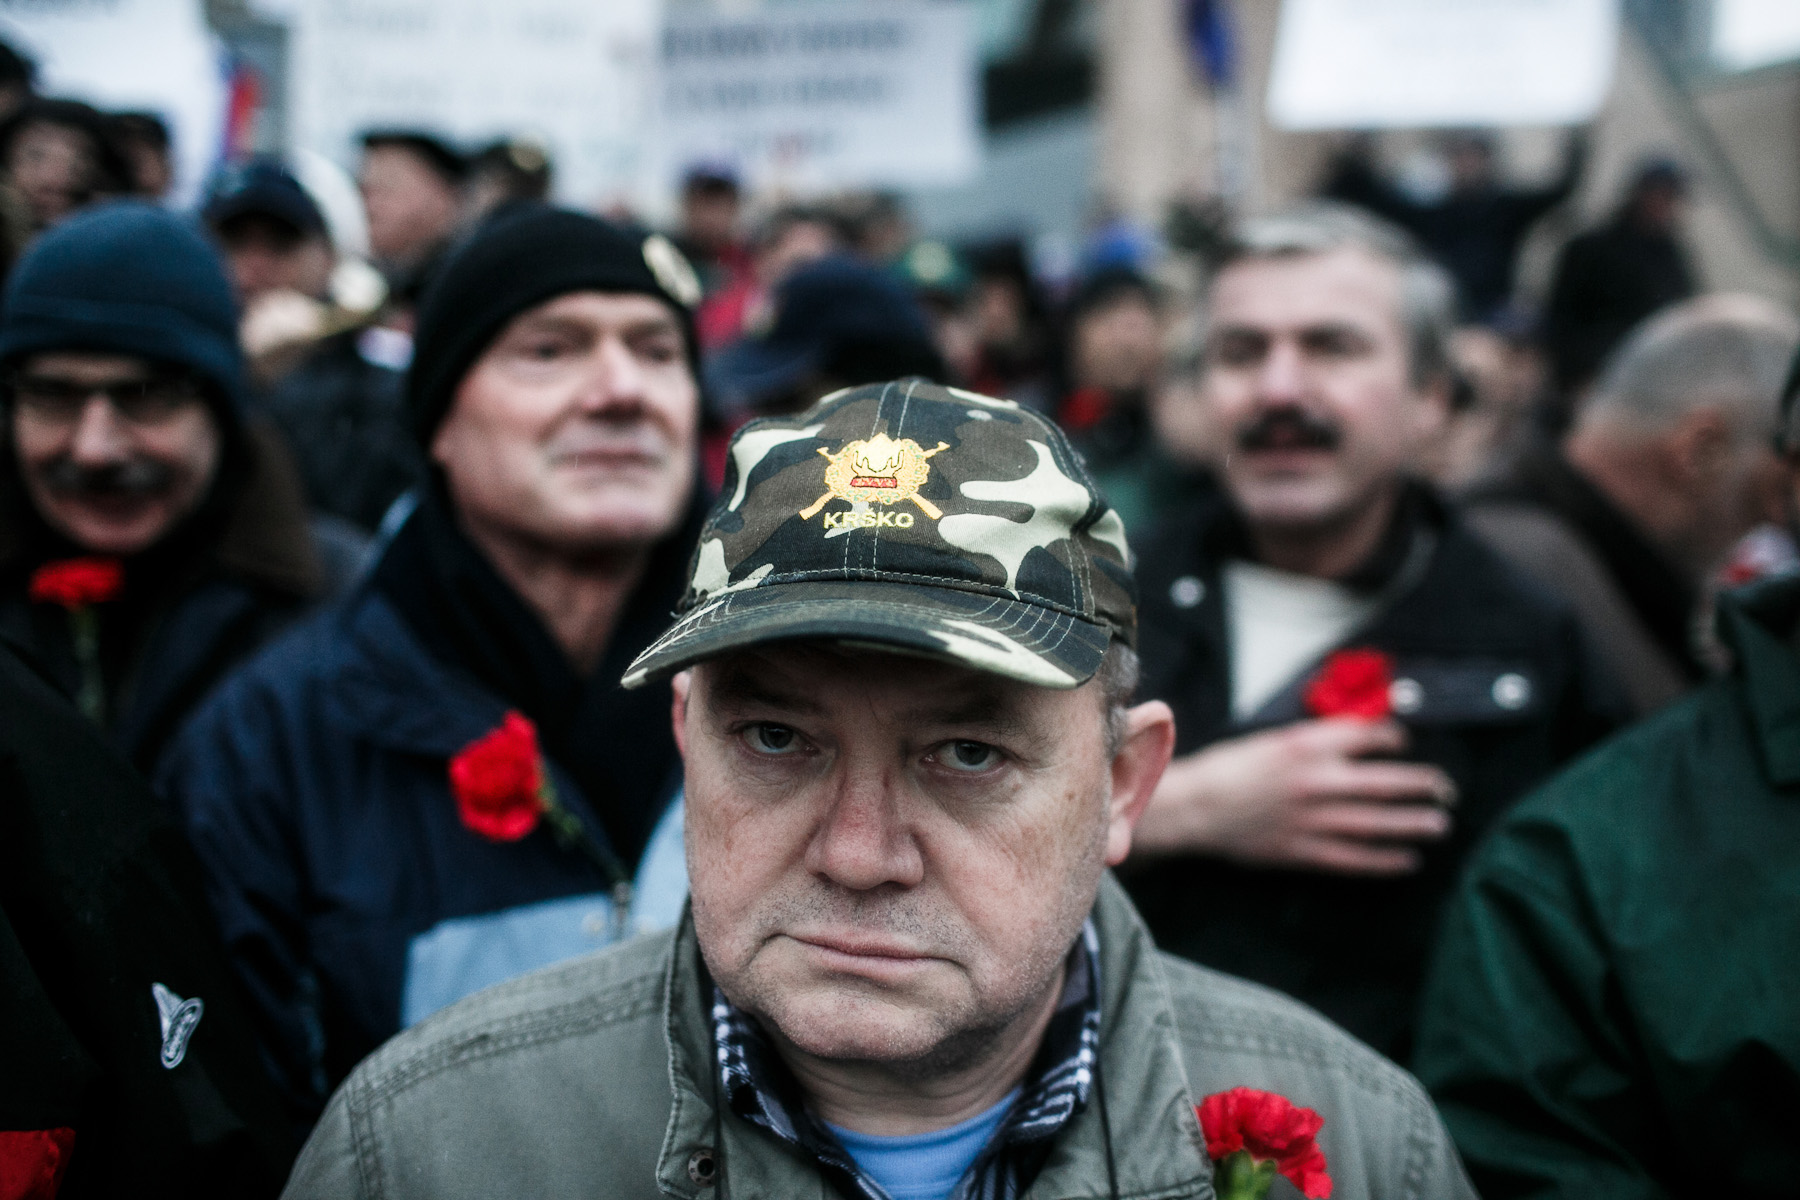 A war veteran wearing a veteran's cap and a carnation protests during a countrywide anti-government protest on December 21, 2012, in Ljubljana, Slovenia.